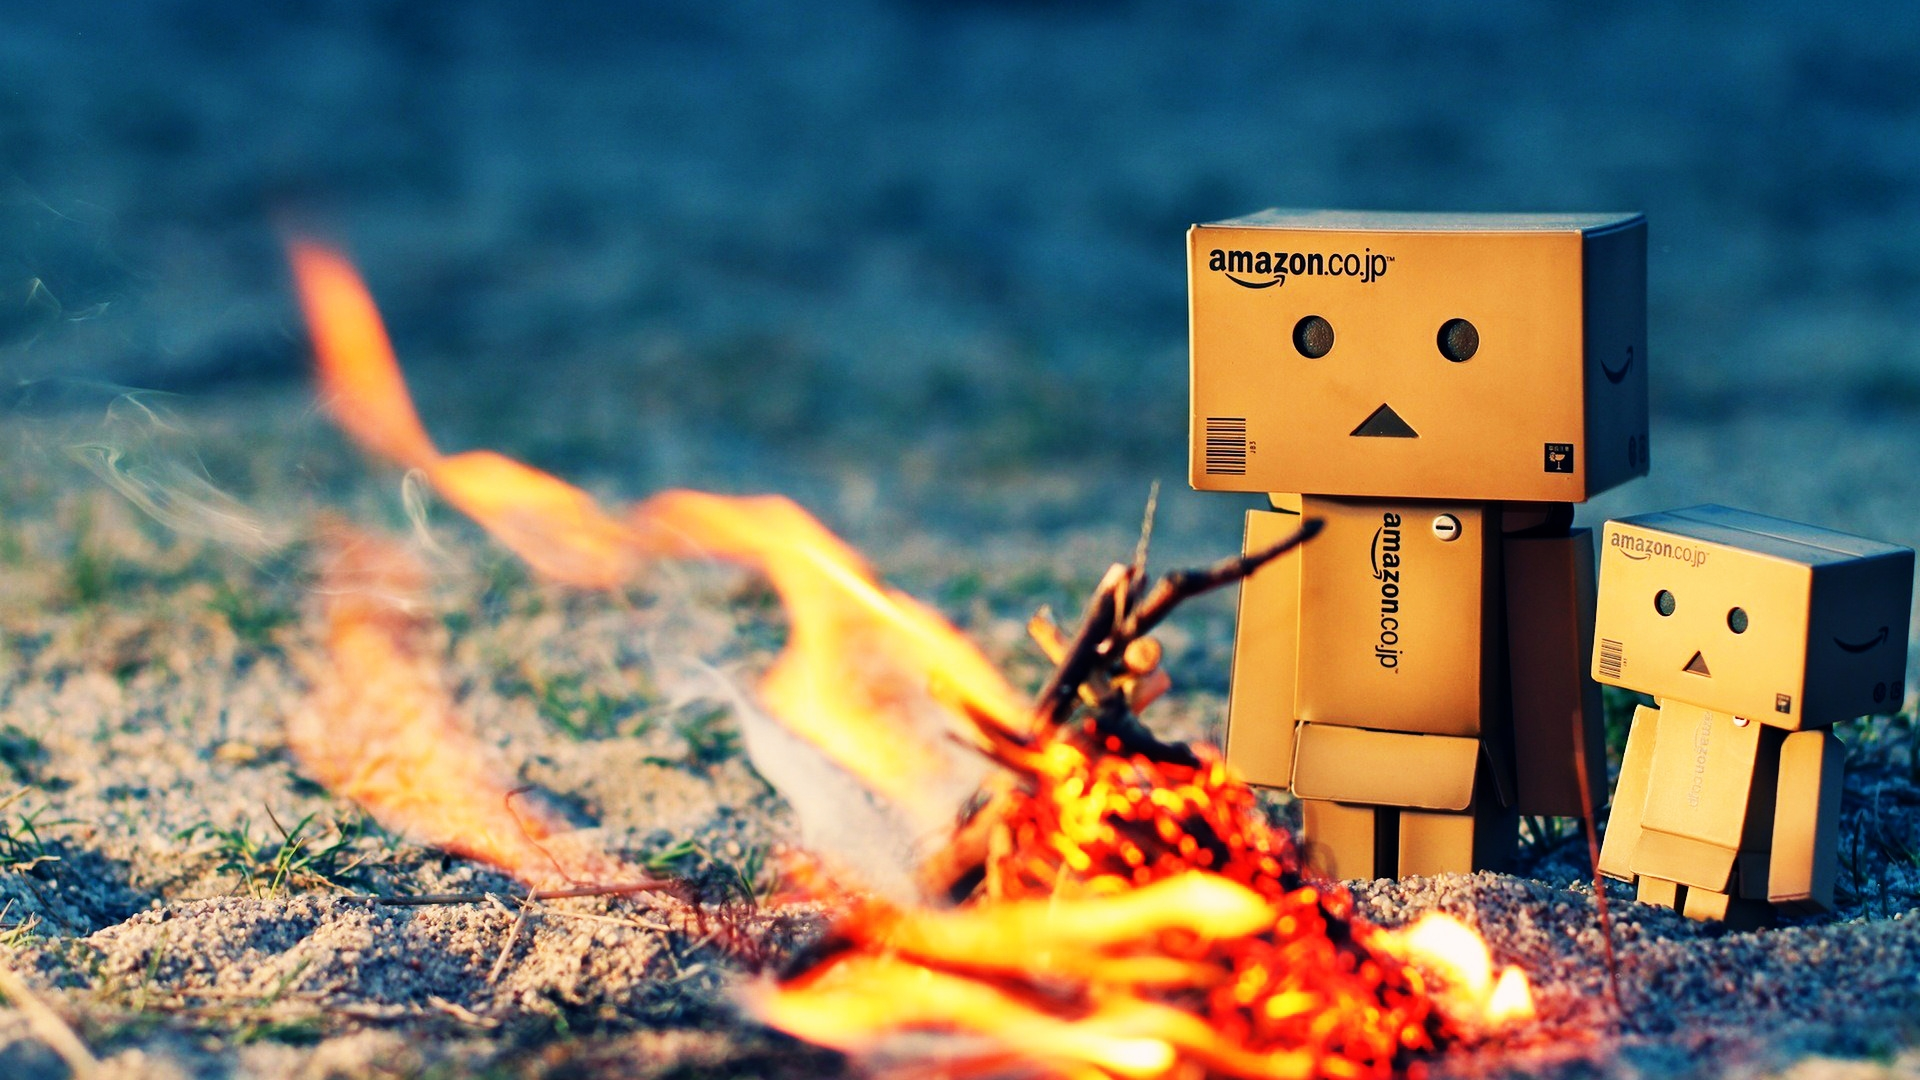 danbo-warming-fire_wallpapers_27357_1920